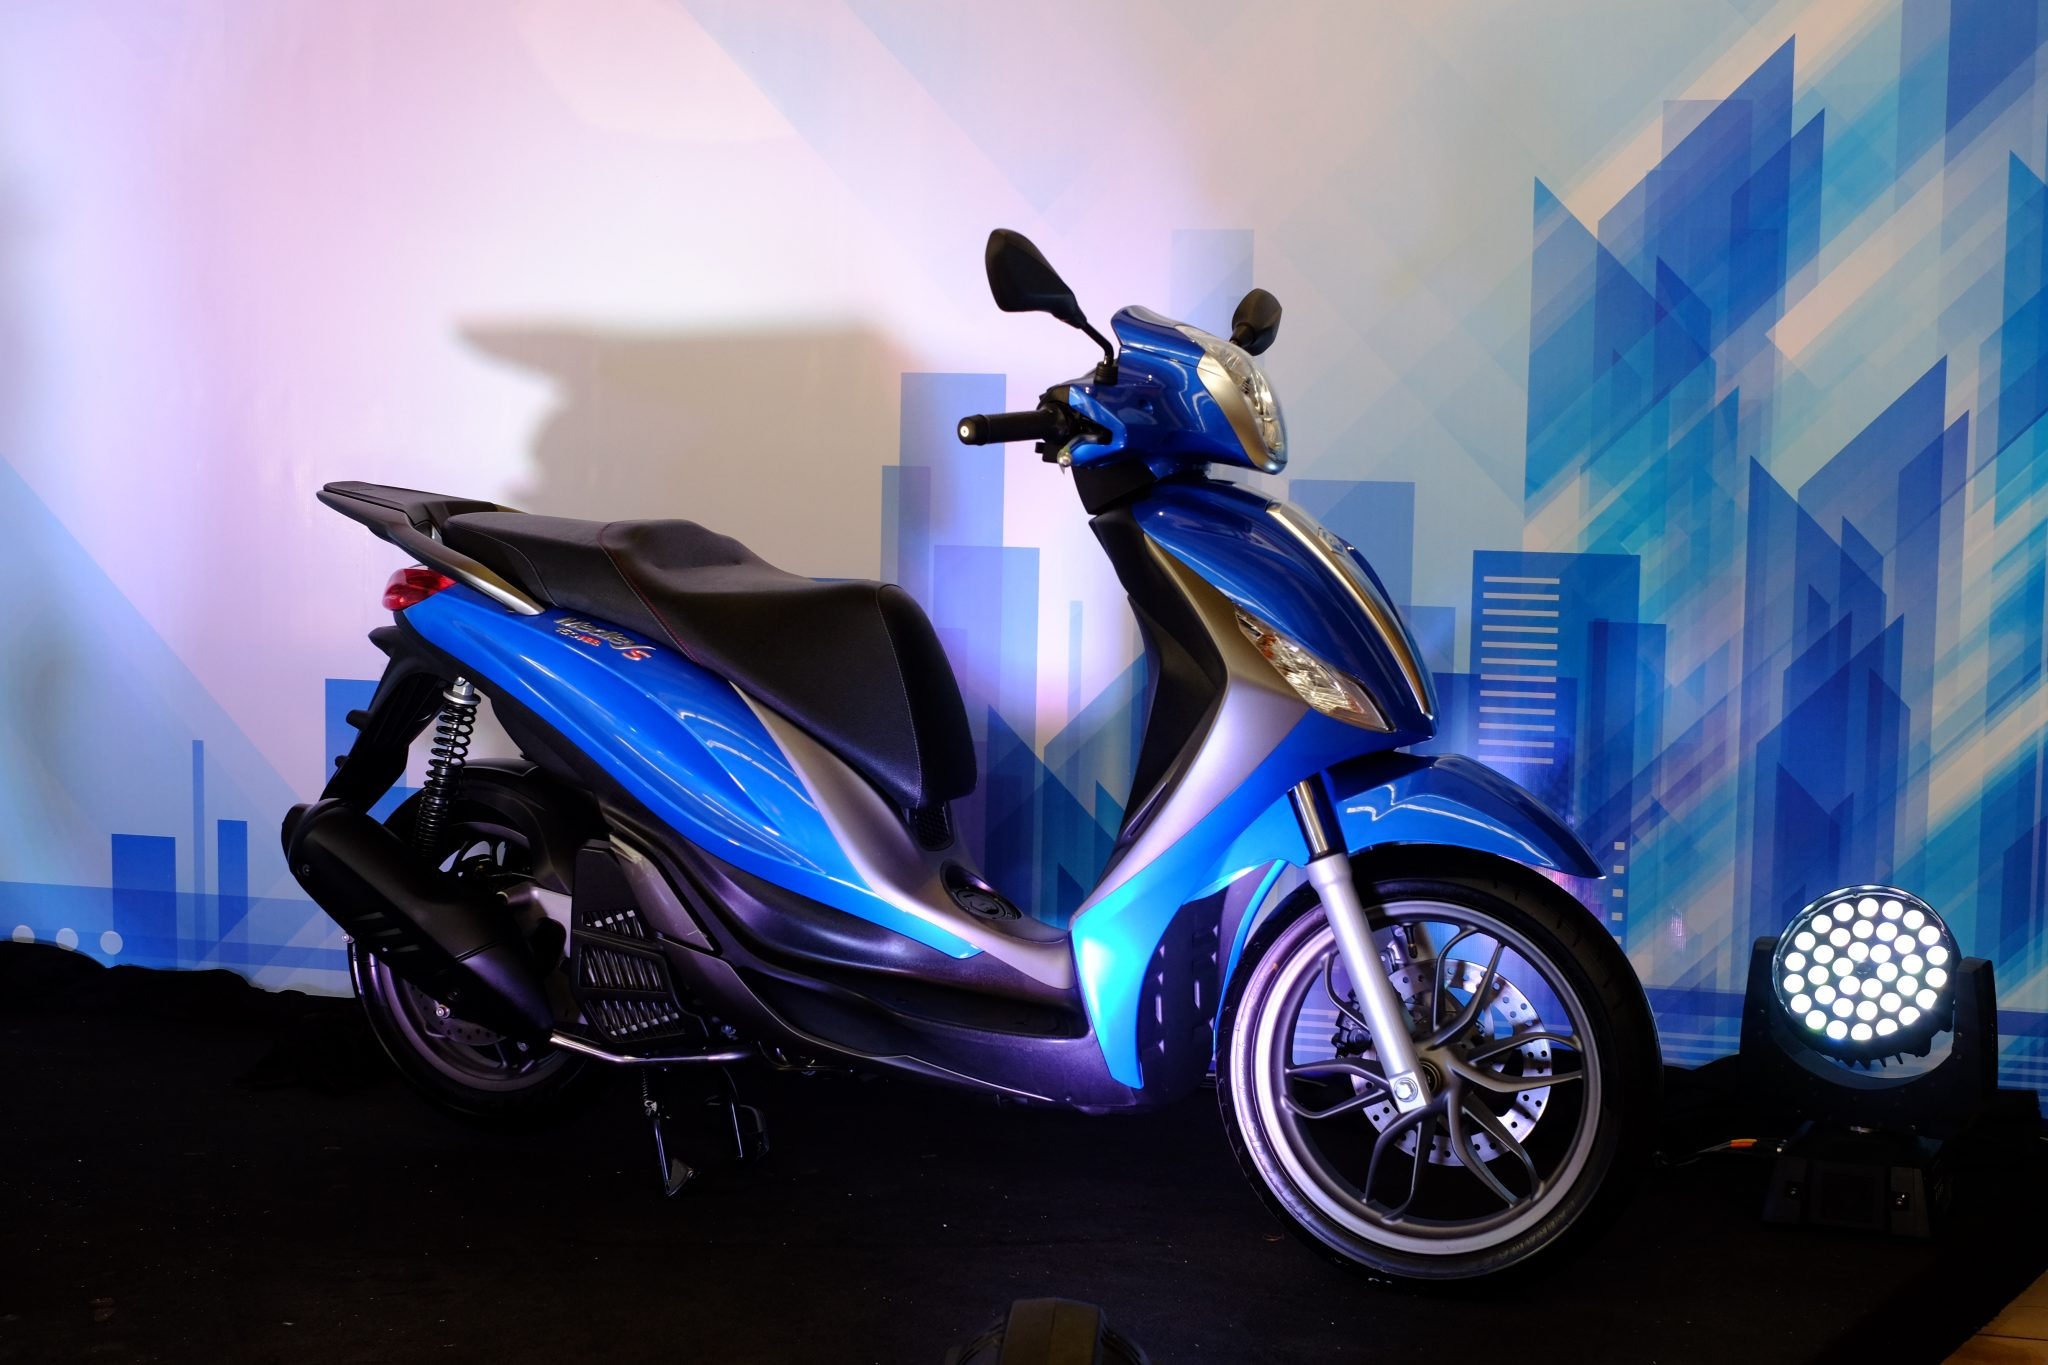 Piaggio Medley S 150 ABS launched in Malaysia - priced at RM19k OTR